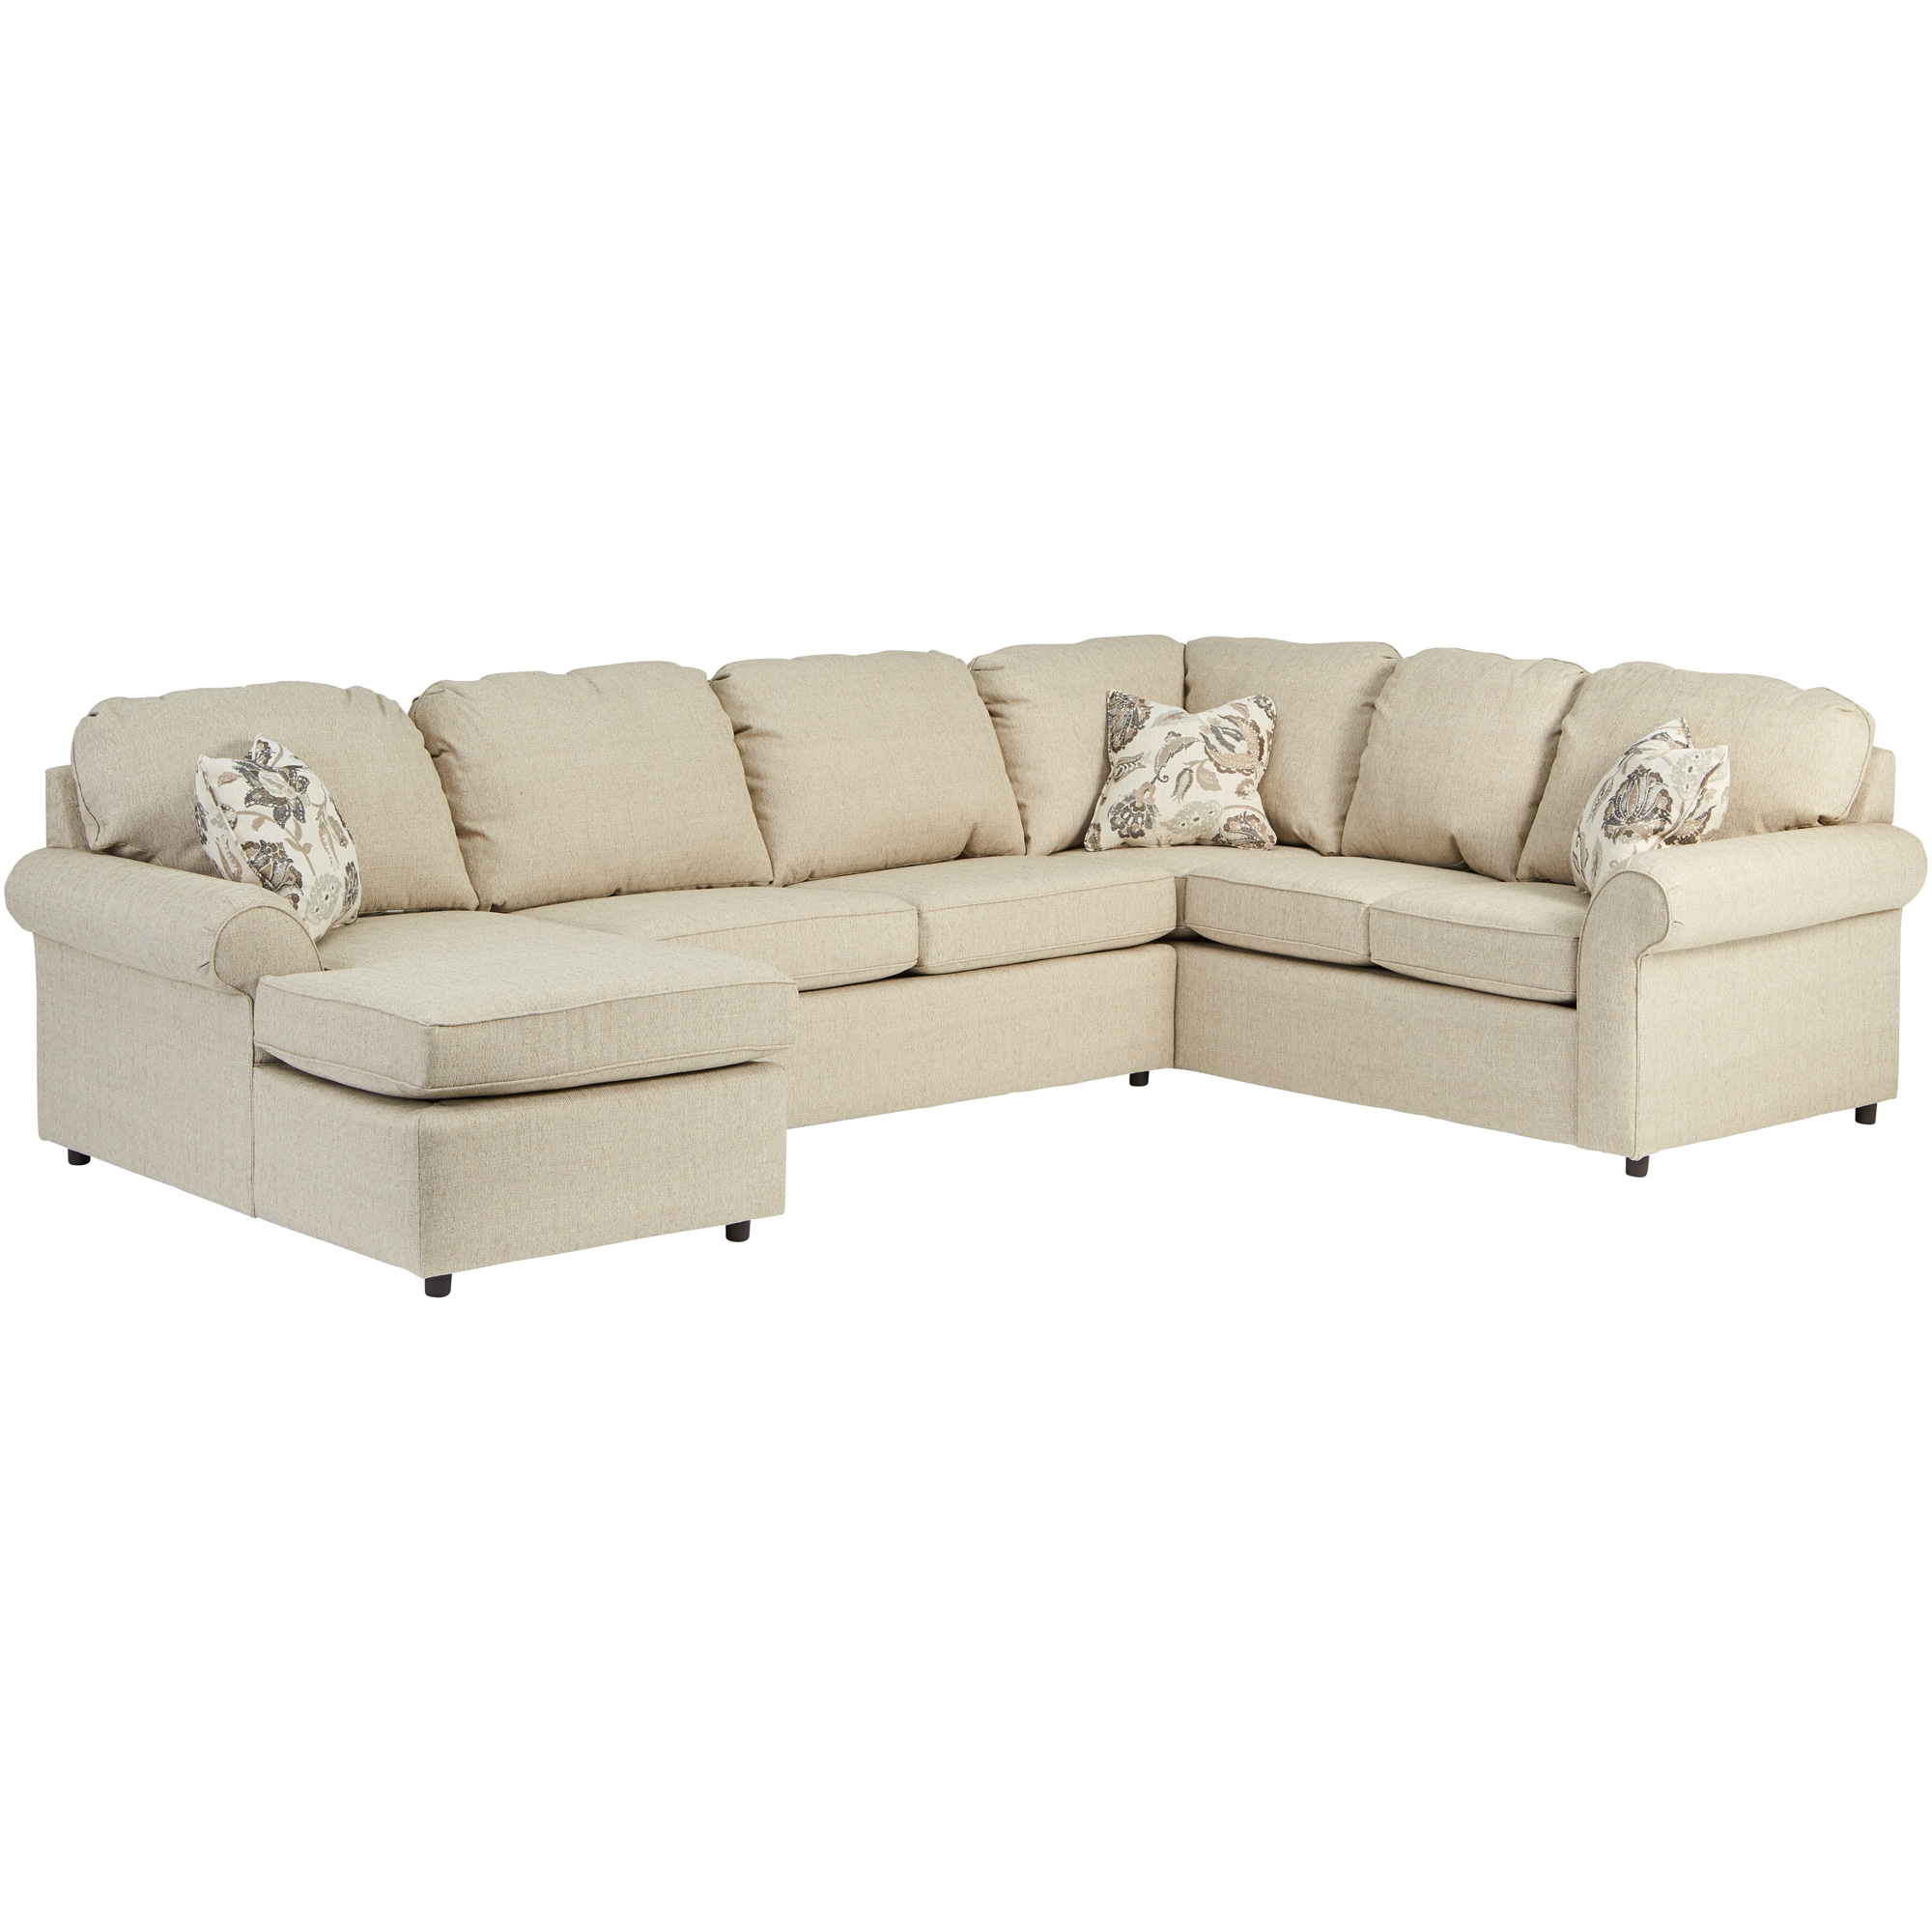 Dimensions By England | Burke Bisque 3 Piece Left Chaise Sectional Sofa